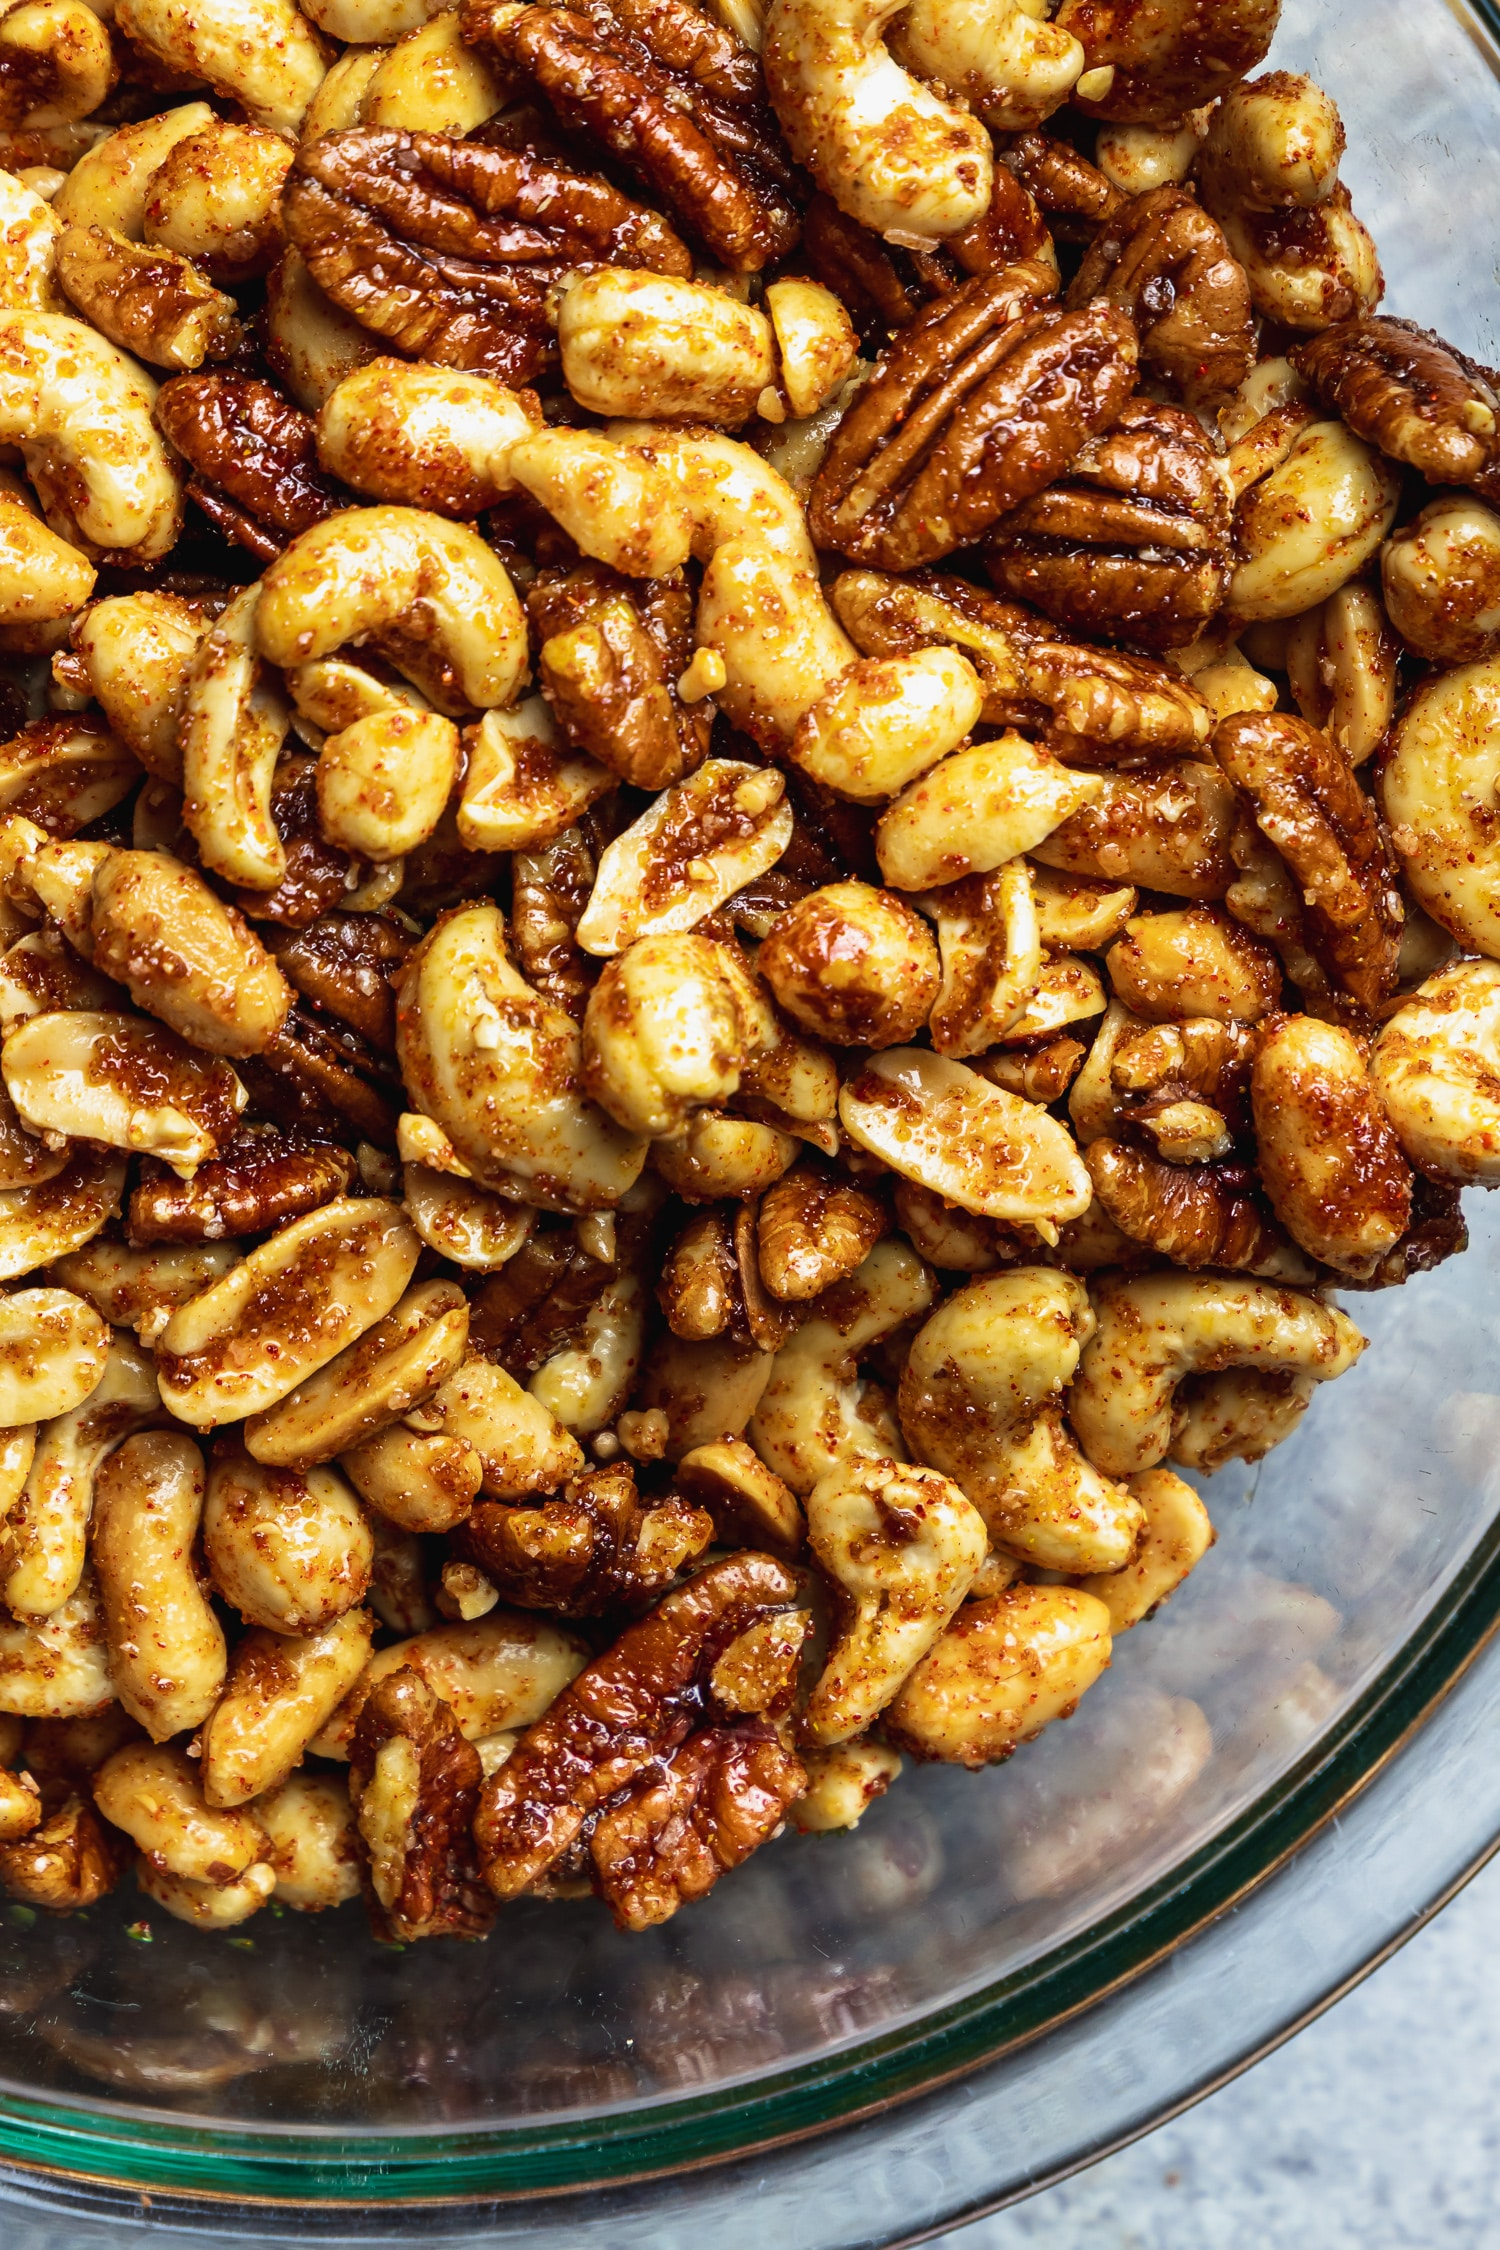 nuts tossed in spice mix